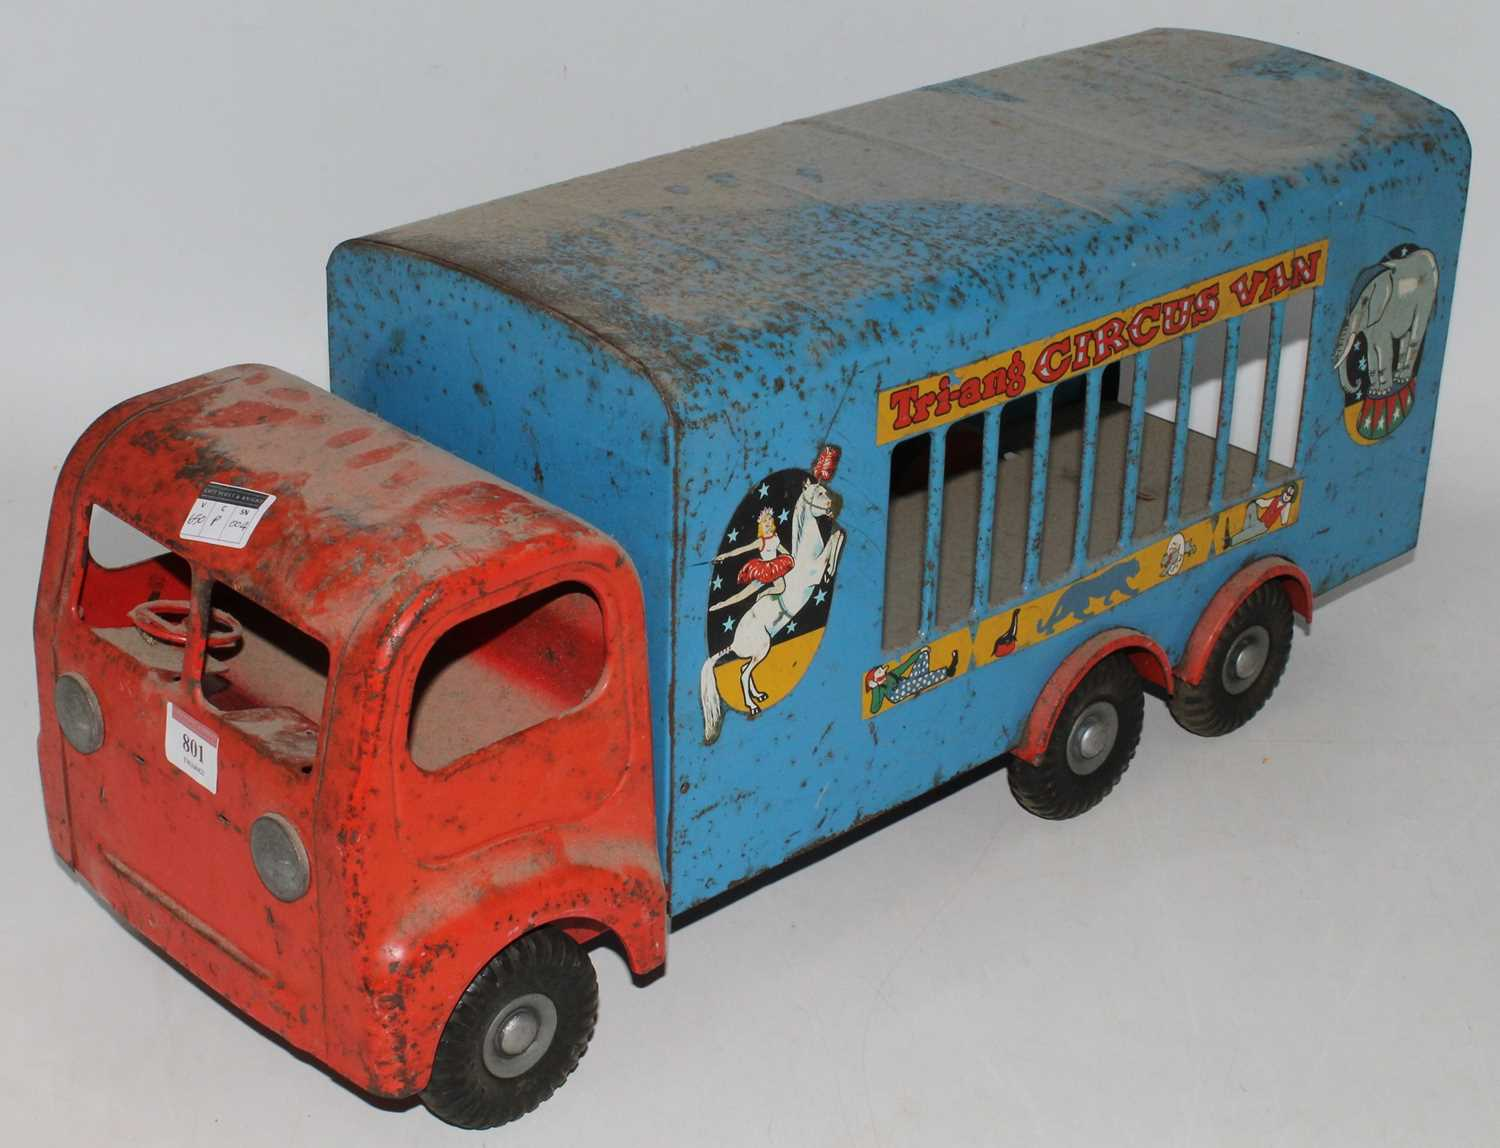 Triang large Circus Van, in blue and red in played with condition, needs cleaning. (F)